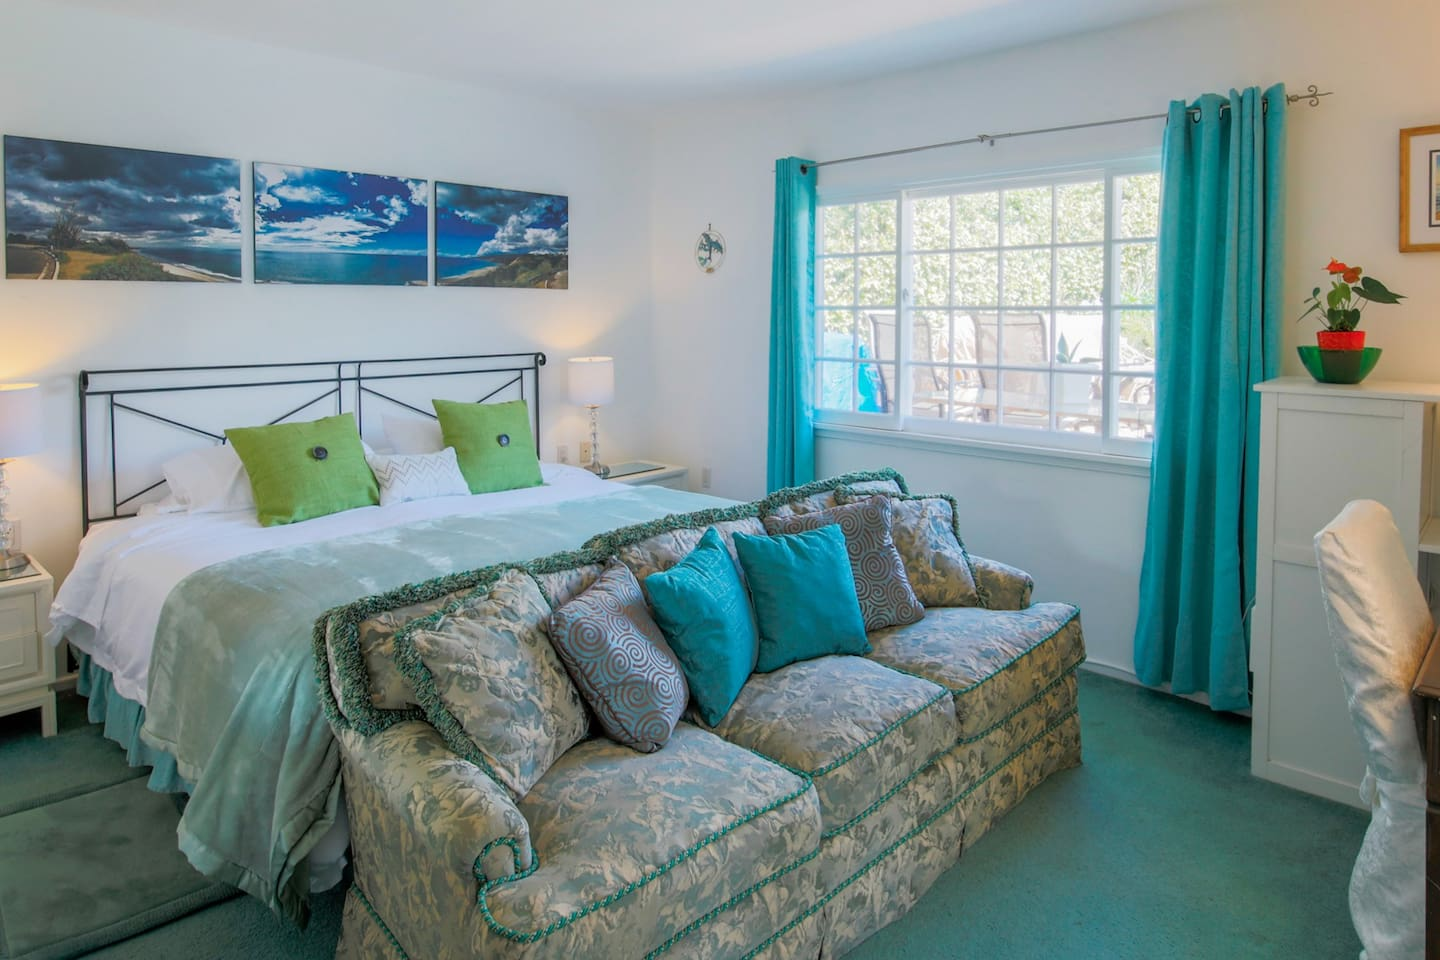 Spacious, well lit master bedroom with luxurious king sized bed.